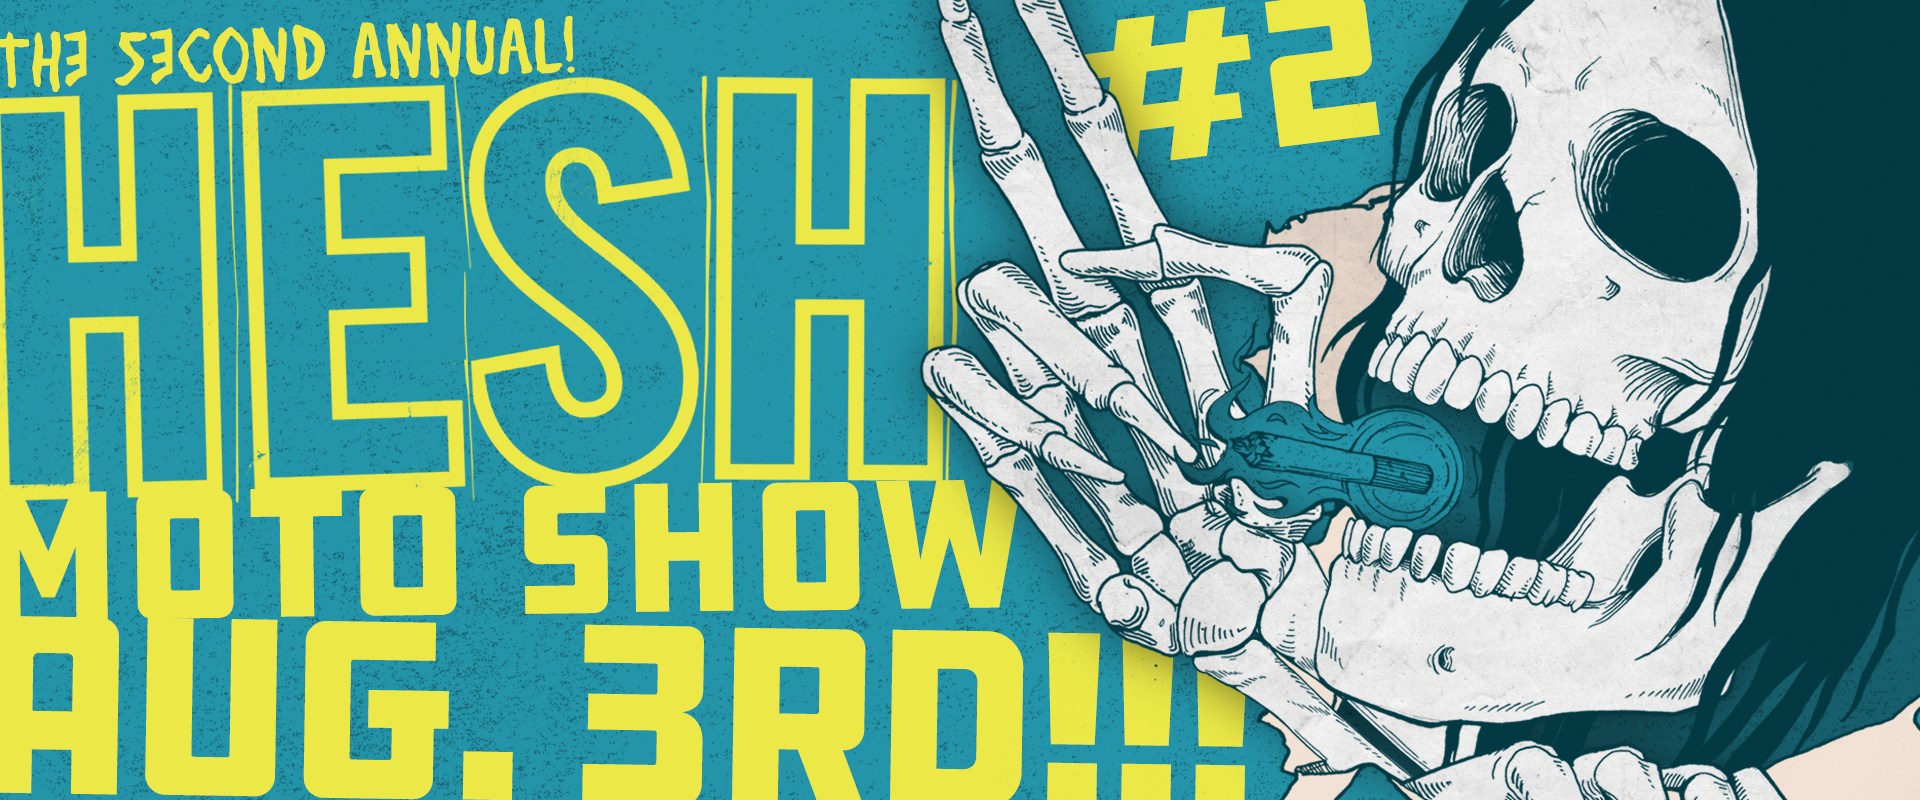 Second Annual Hesh Moto Show: August 3, 2019